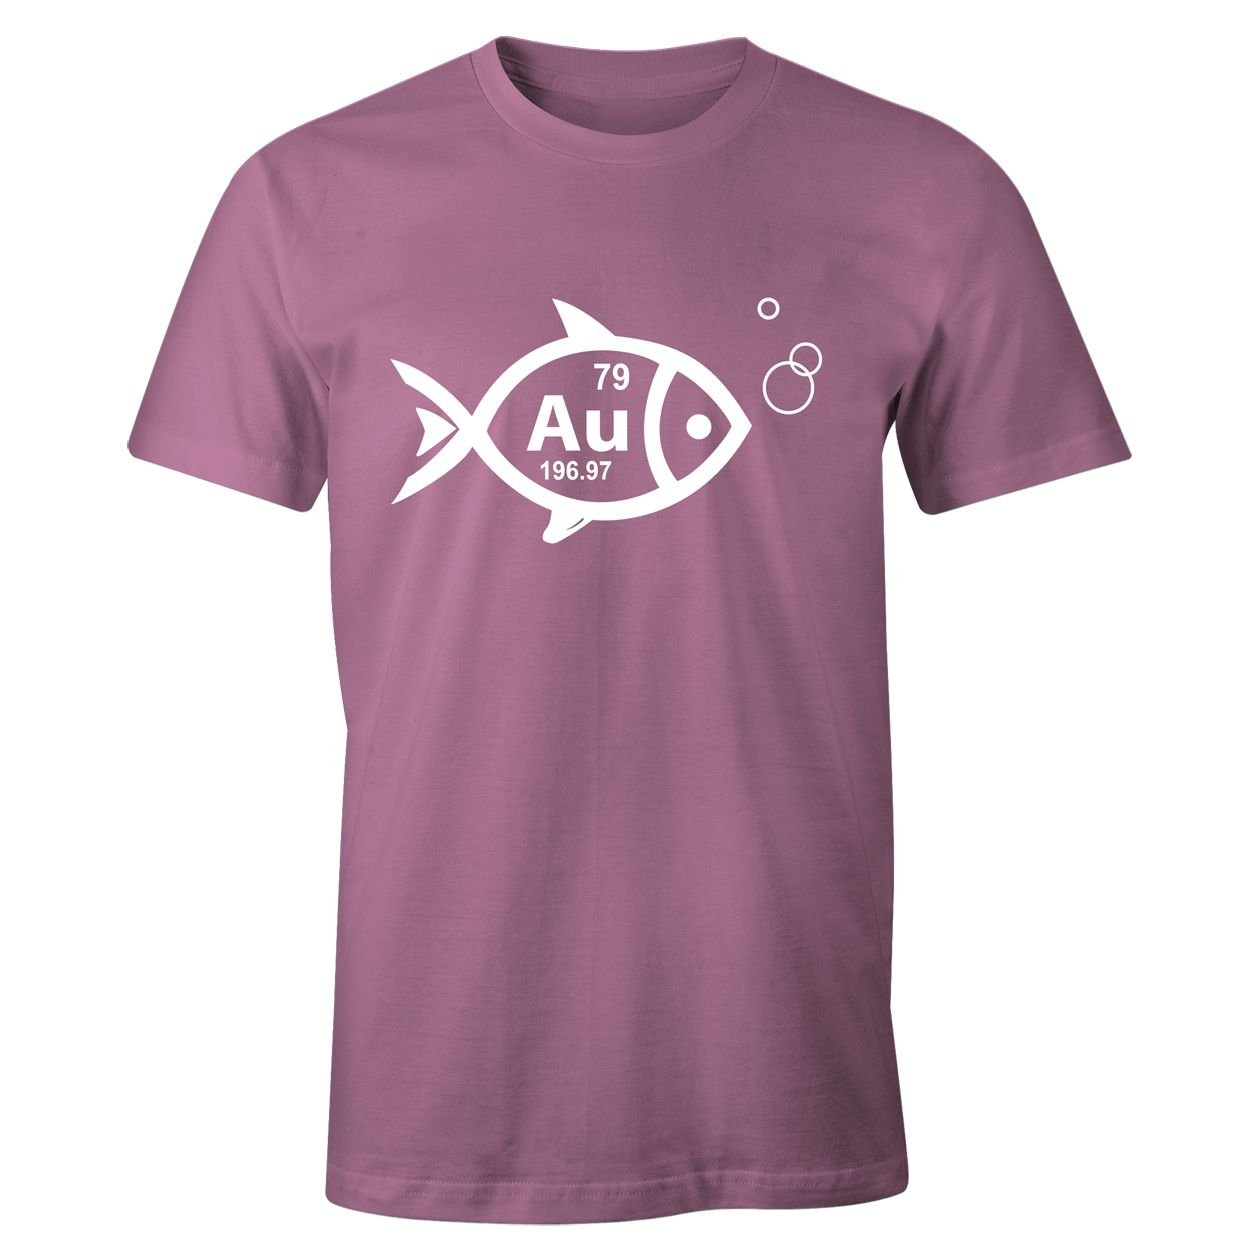 Goldfish AU Cool Retro Periodic Symbol Womens Top - T-Shirt, Light Pink, Print Color-White, 2X-Large